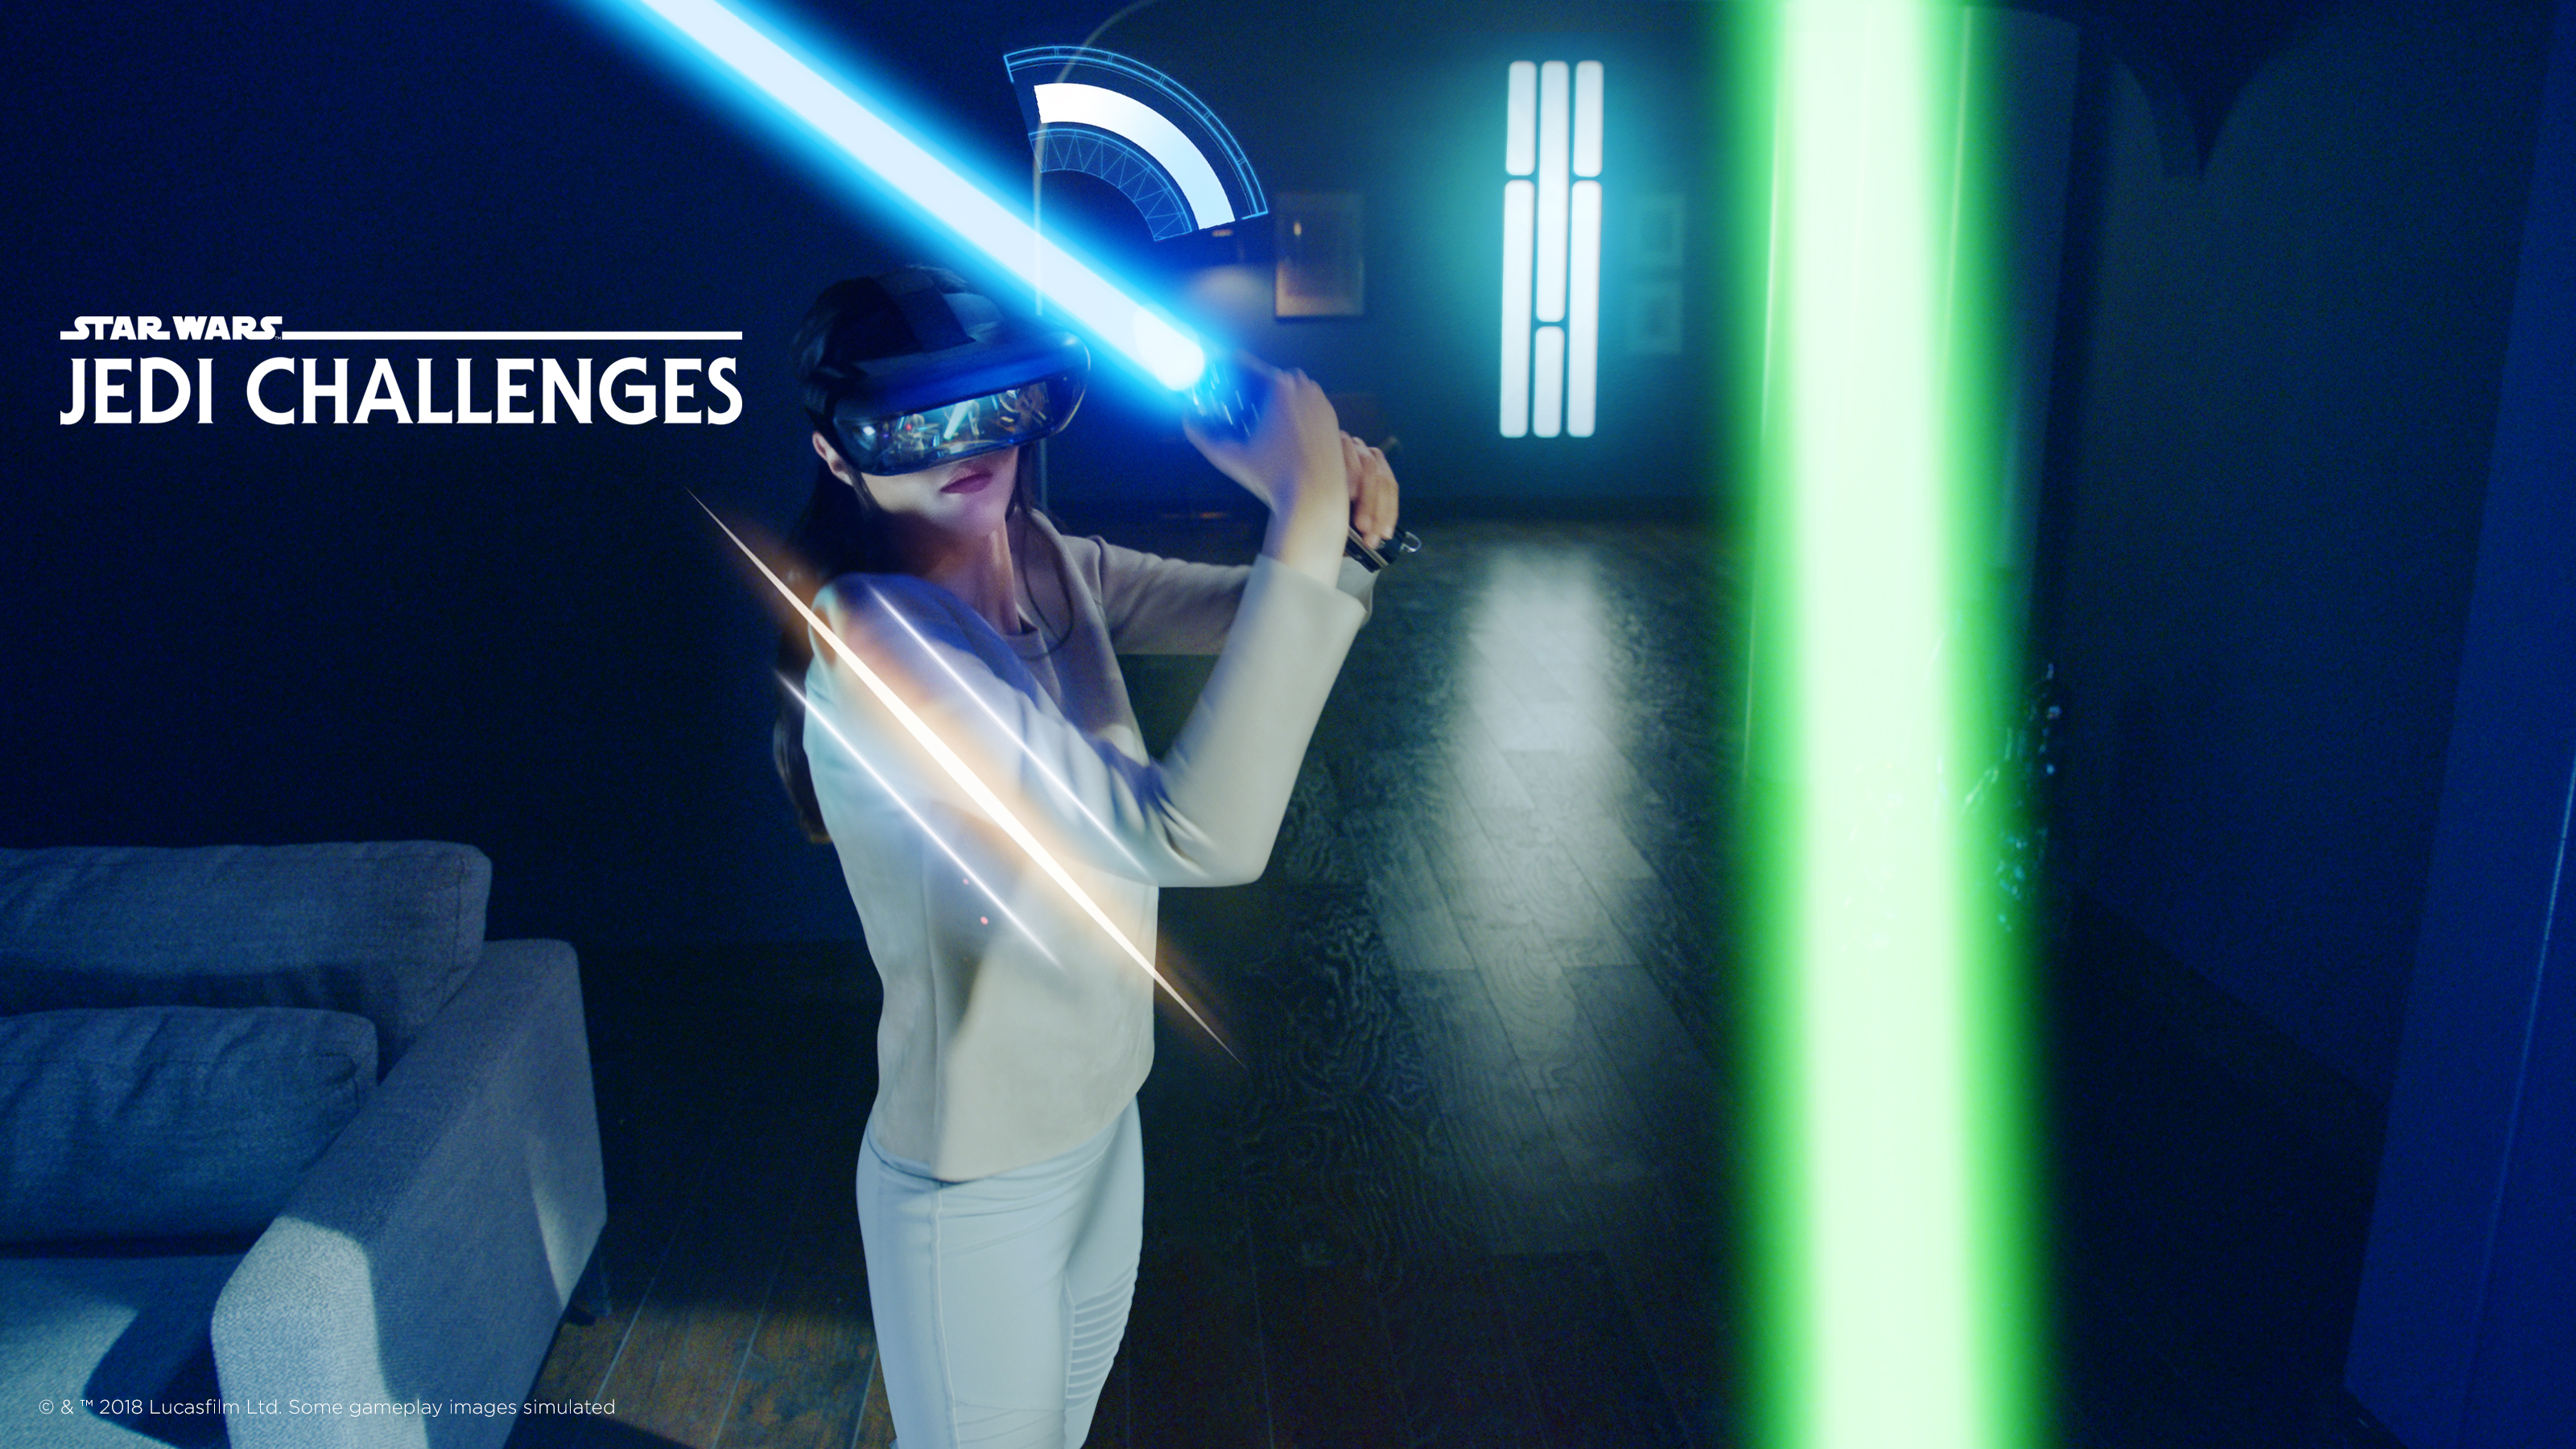 lenovo-star-wars-jedi-challenges-mehrspieler-modus-mit-grünem-lichtschwert-und-logo Multiplayer-Update für Star Wars: Jedi Challenges von Lenovo verfügbar Apple iOS Entertainment Gadgets Games Google Android Hardware Lenovo Software Spielekonsolen YouTube Videos